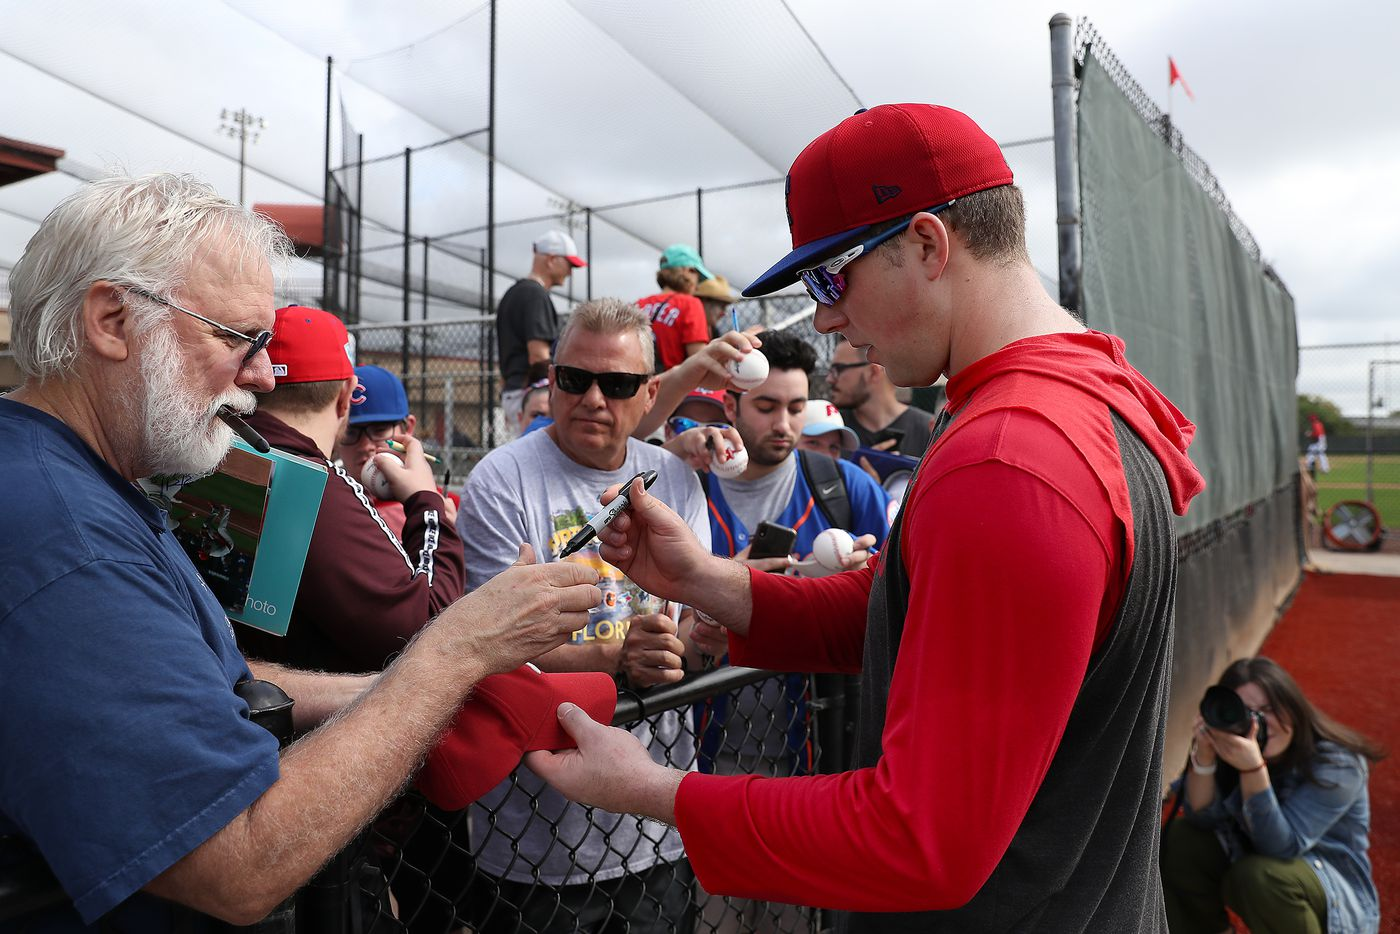 Rhys Hoskins signs autographs during Phillies spring training in Clearwater, Fla. on Feb. 14.